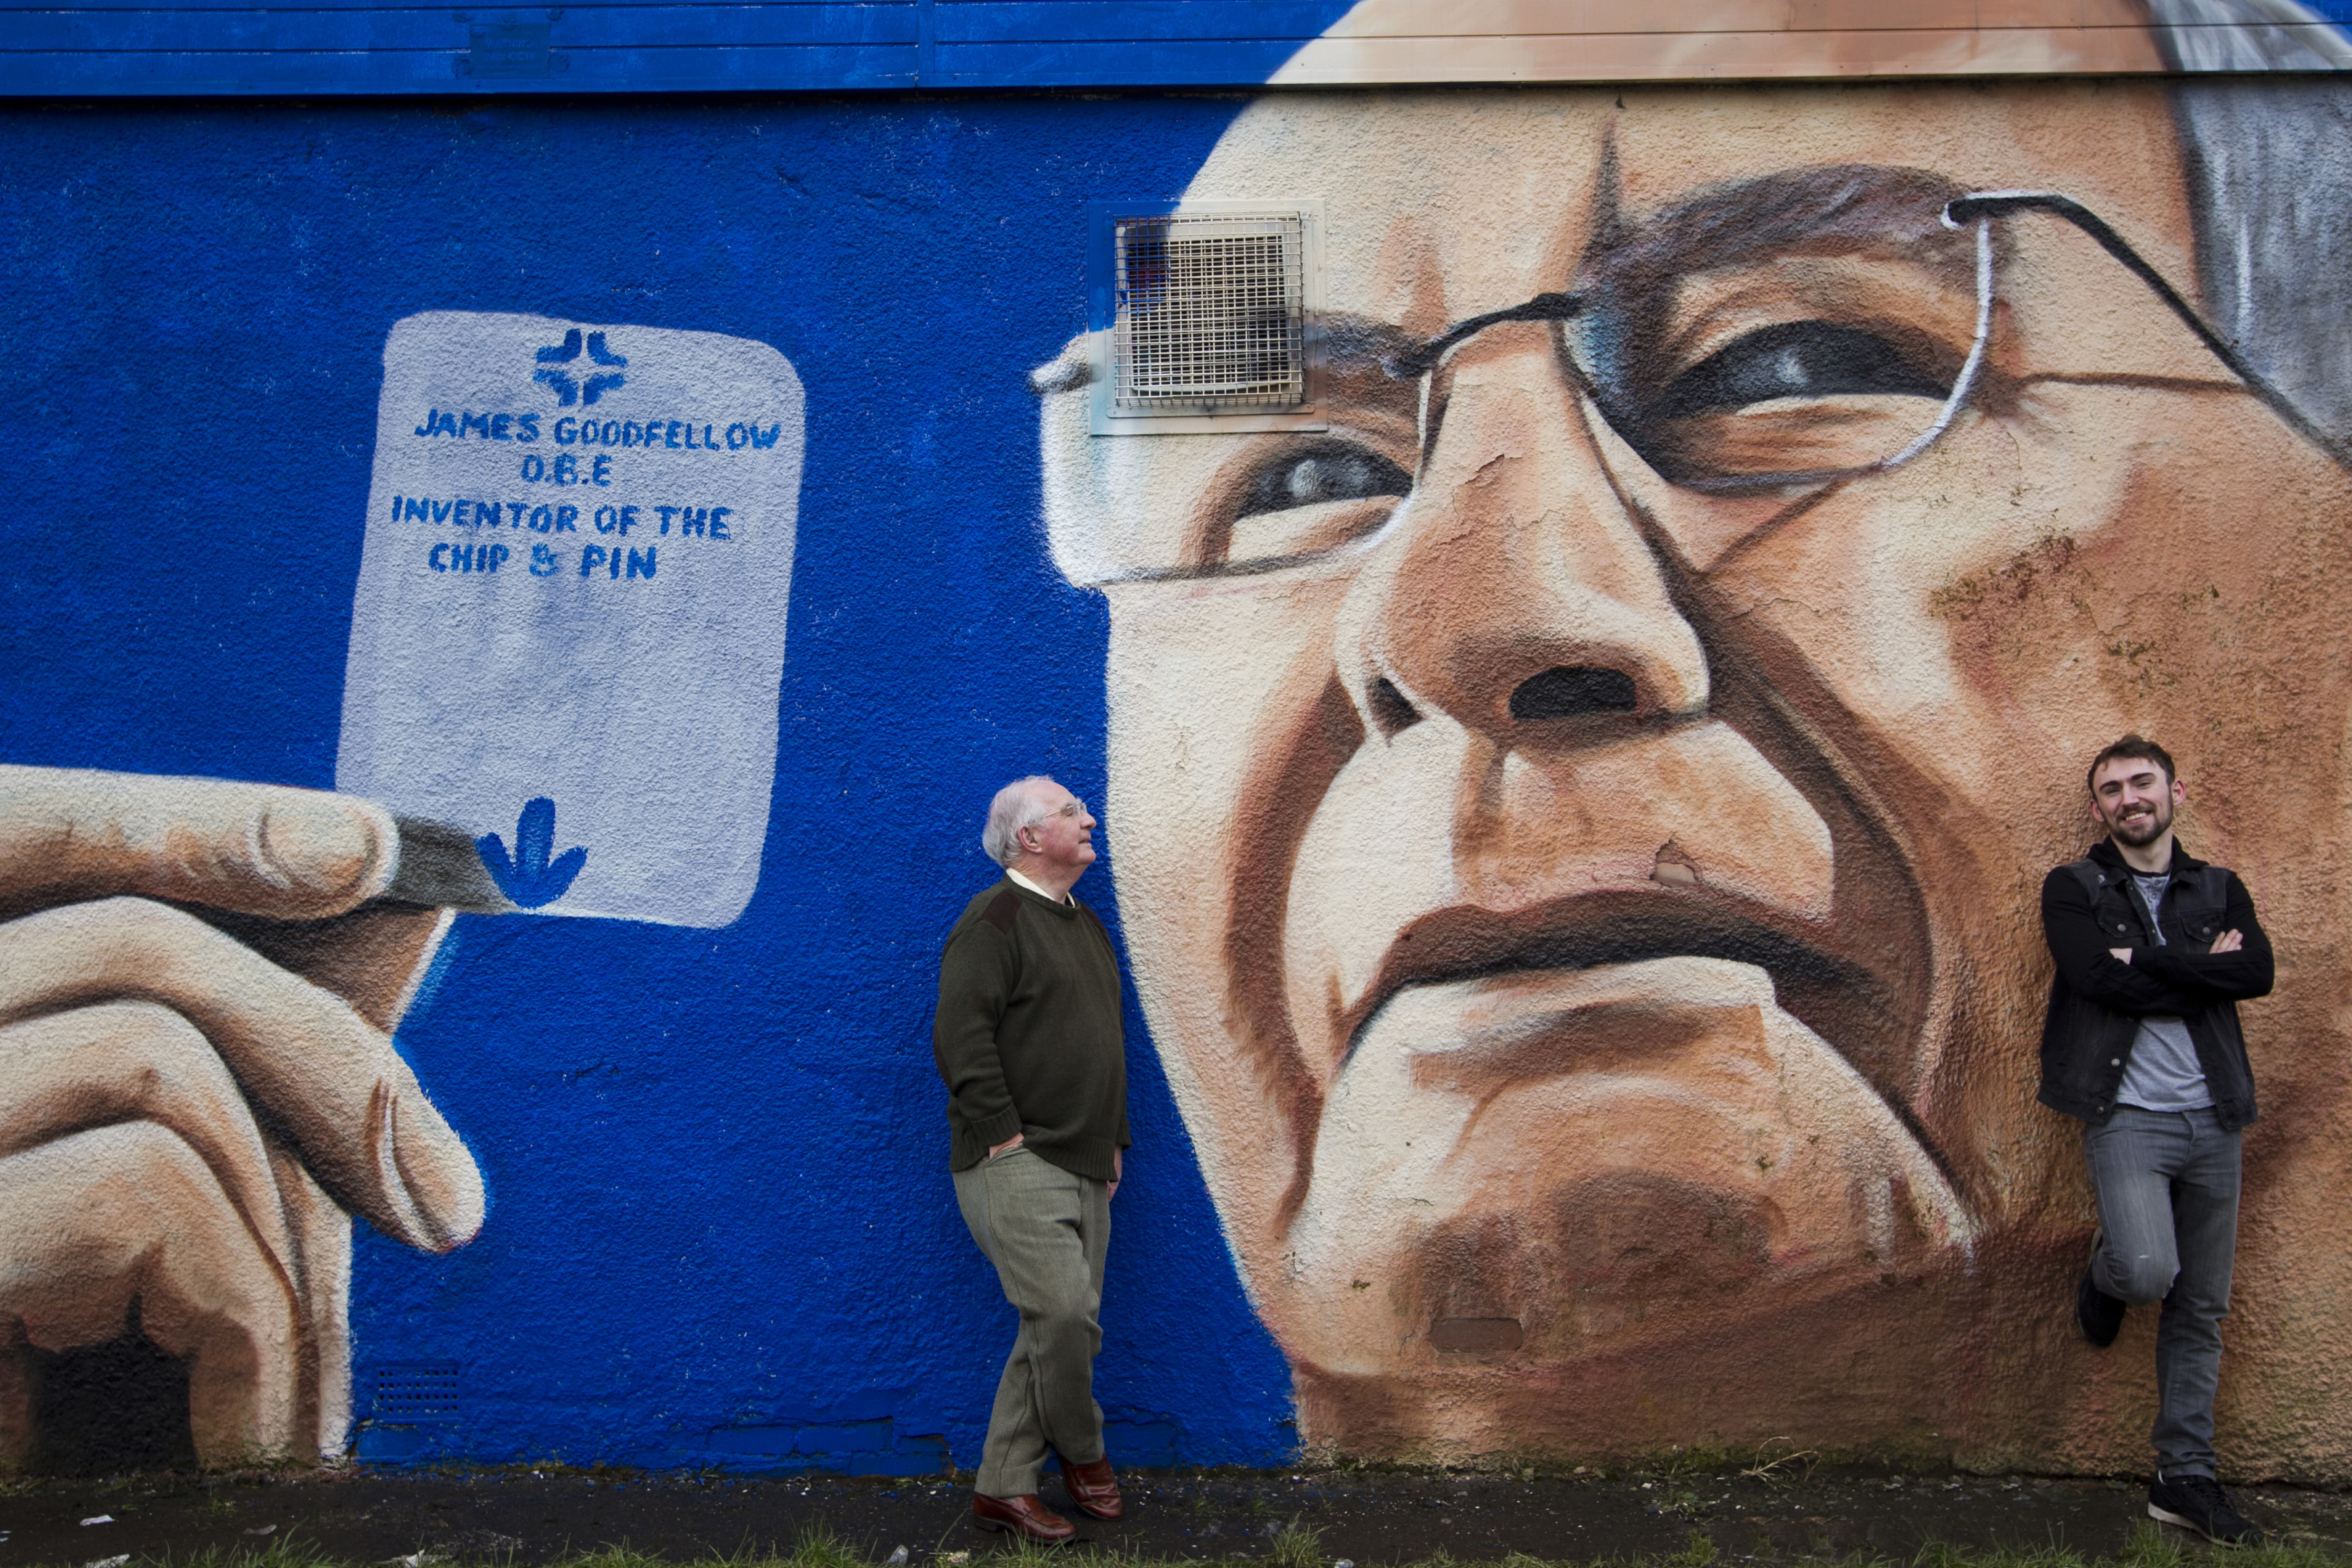 Graffiti artist Shaun Deveney, right, created the mural in Paisley in tribute to ATM inventor James Goodfellow, left            (Andrew Cawley / DC Thomson)